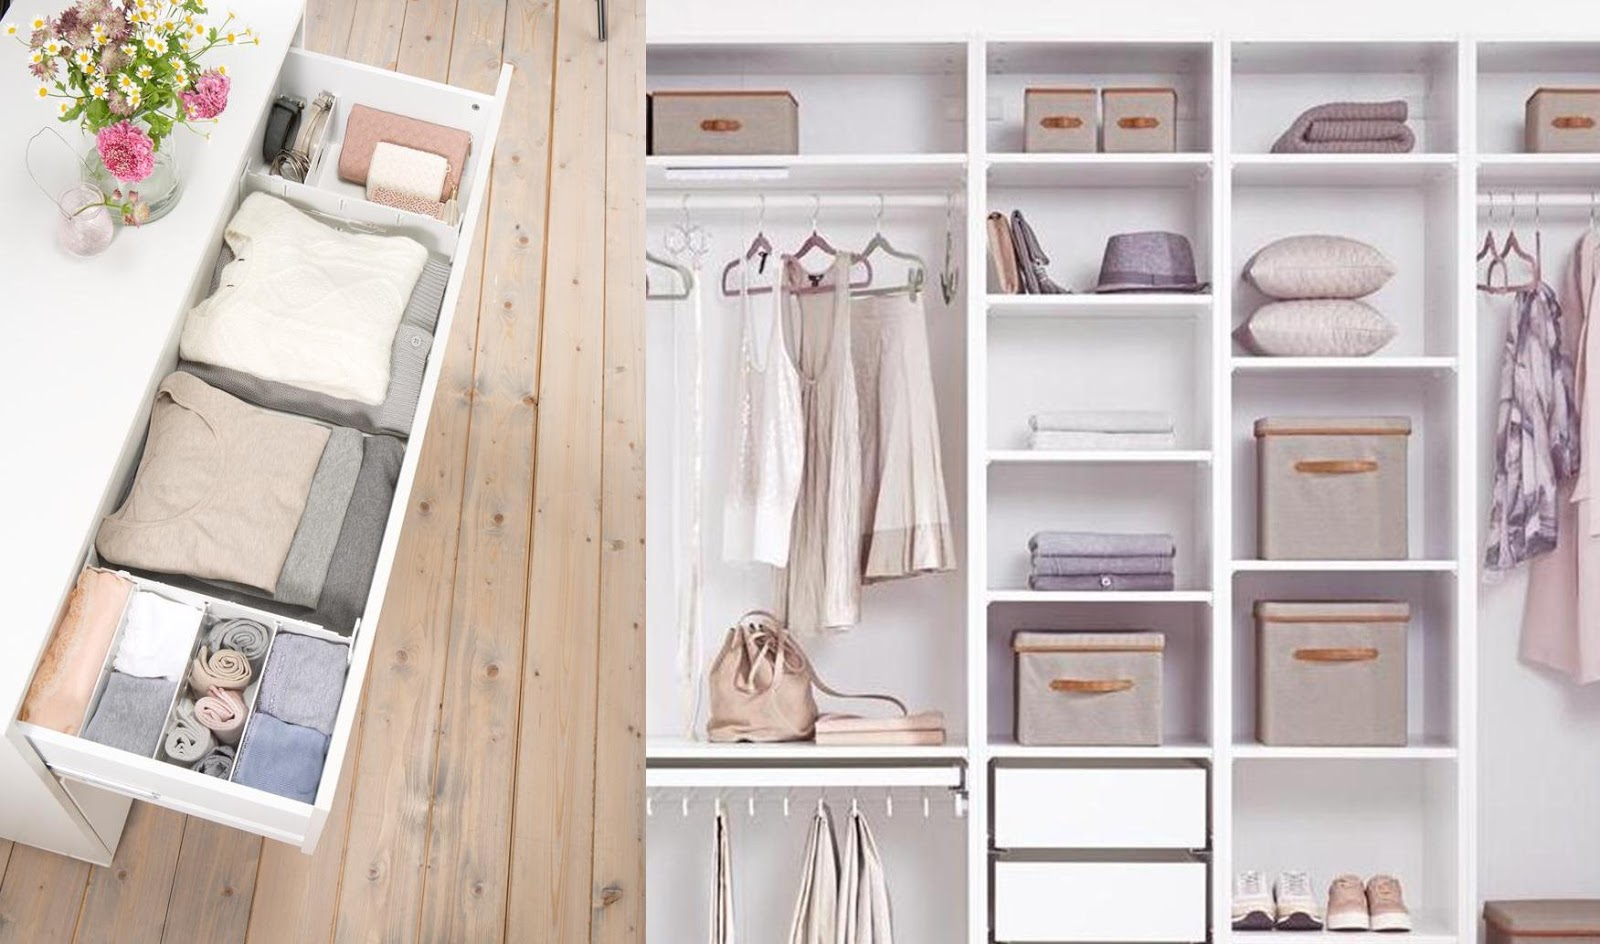 refresh your wardrobe with new tools the wardrobe organizer. Black Bedroom Furniture Sets. Home Design Ideas